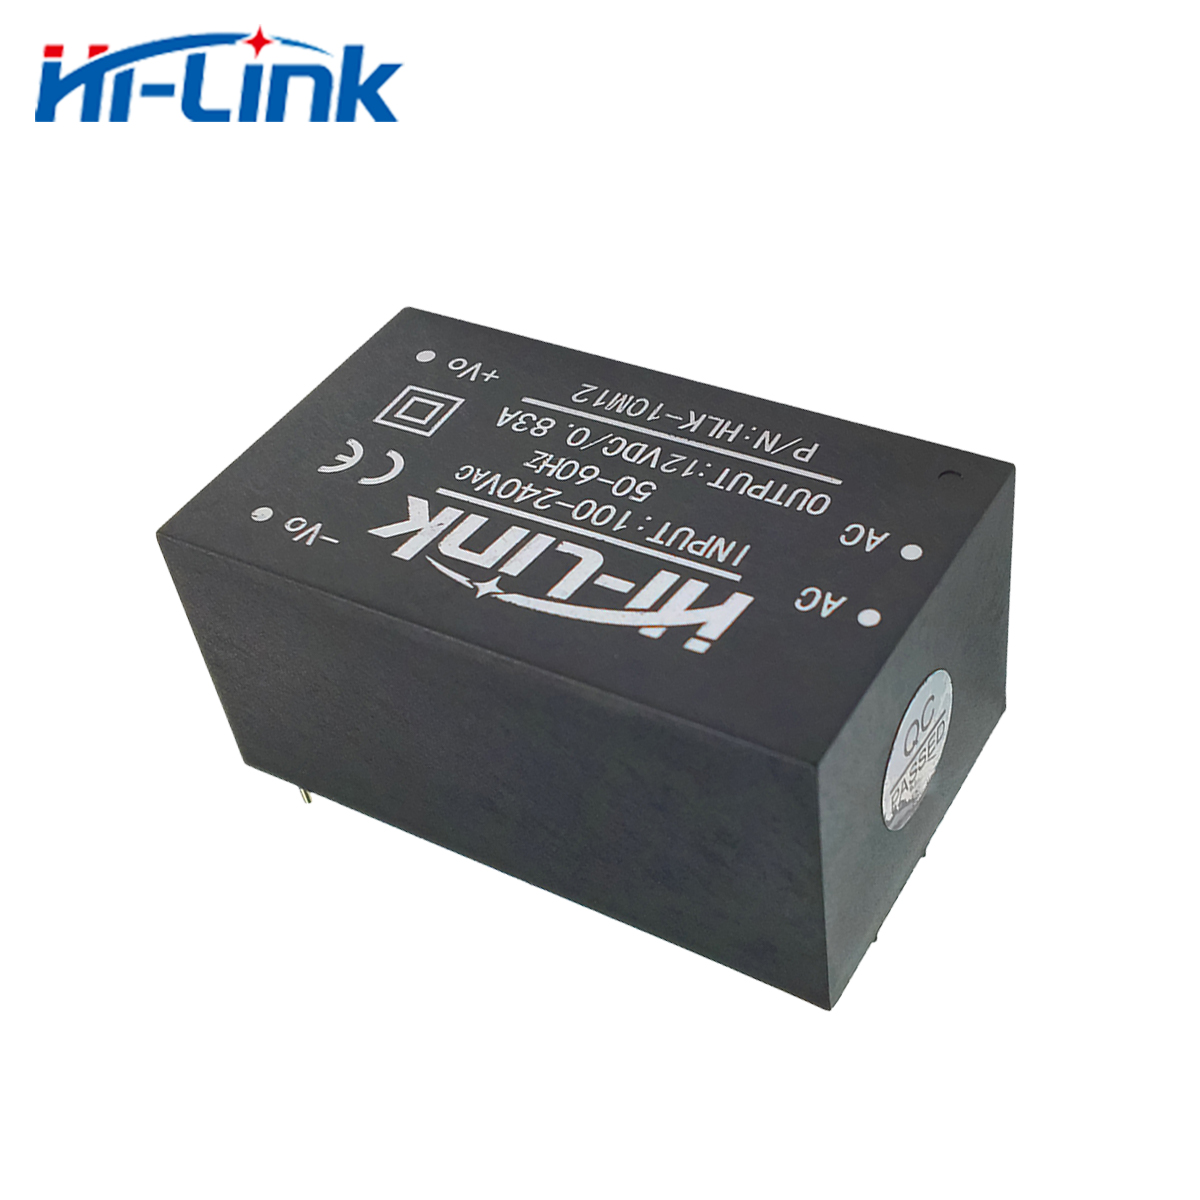 Free shipping 5pcs/lot <font><b>220V</b></font> <font><b>to</b></font> 10W <font><b>12V</b></font> 830ma single output power supply <font><b>module</b></font> ce image